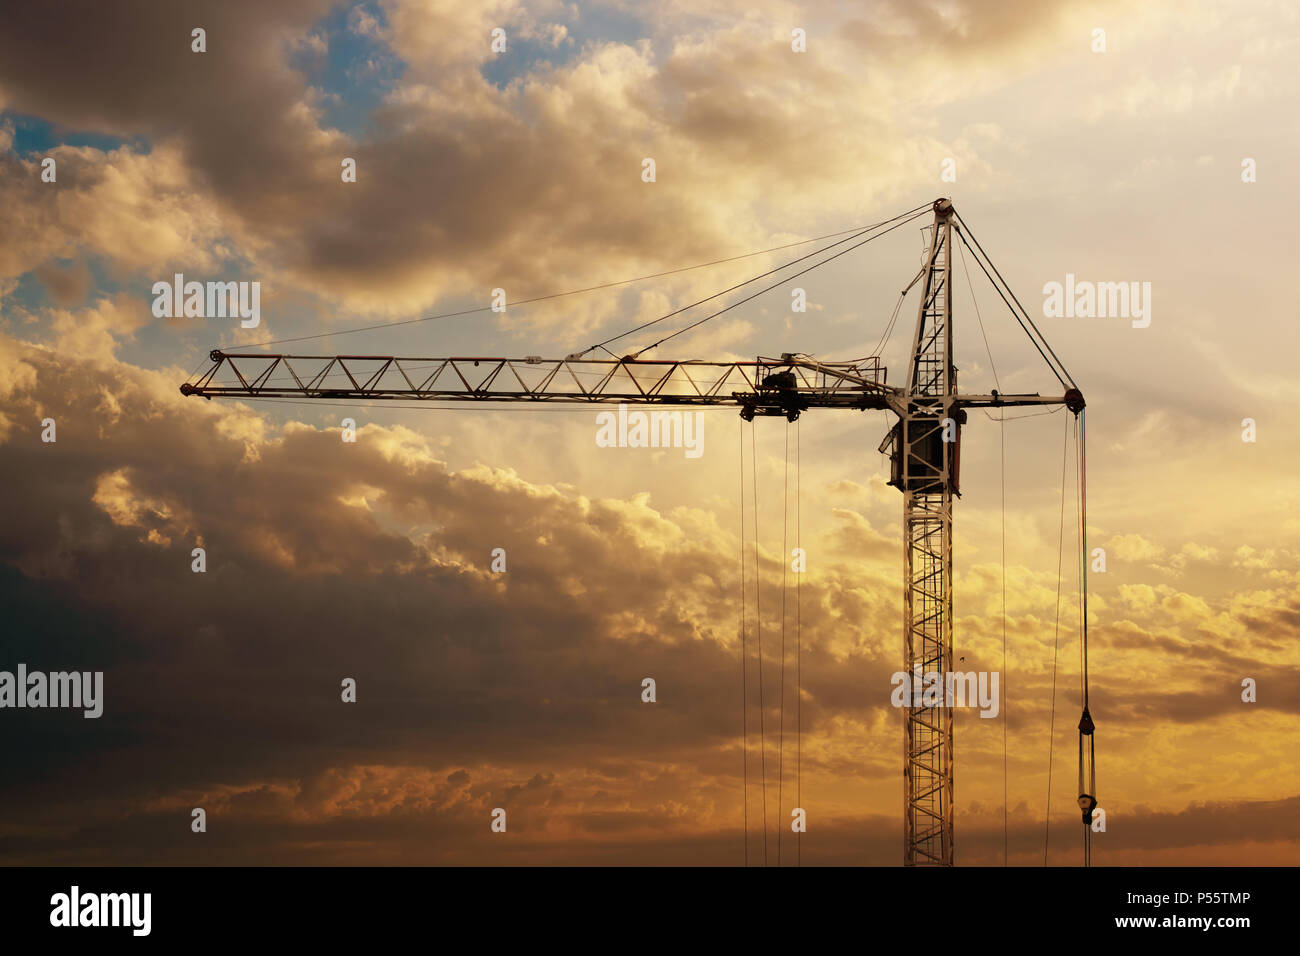 Tower crane on a construction site at sunrise. - Stock Image